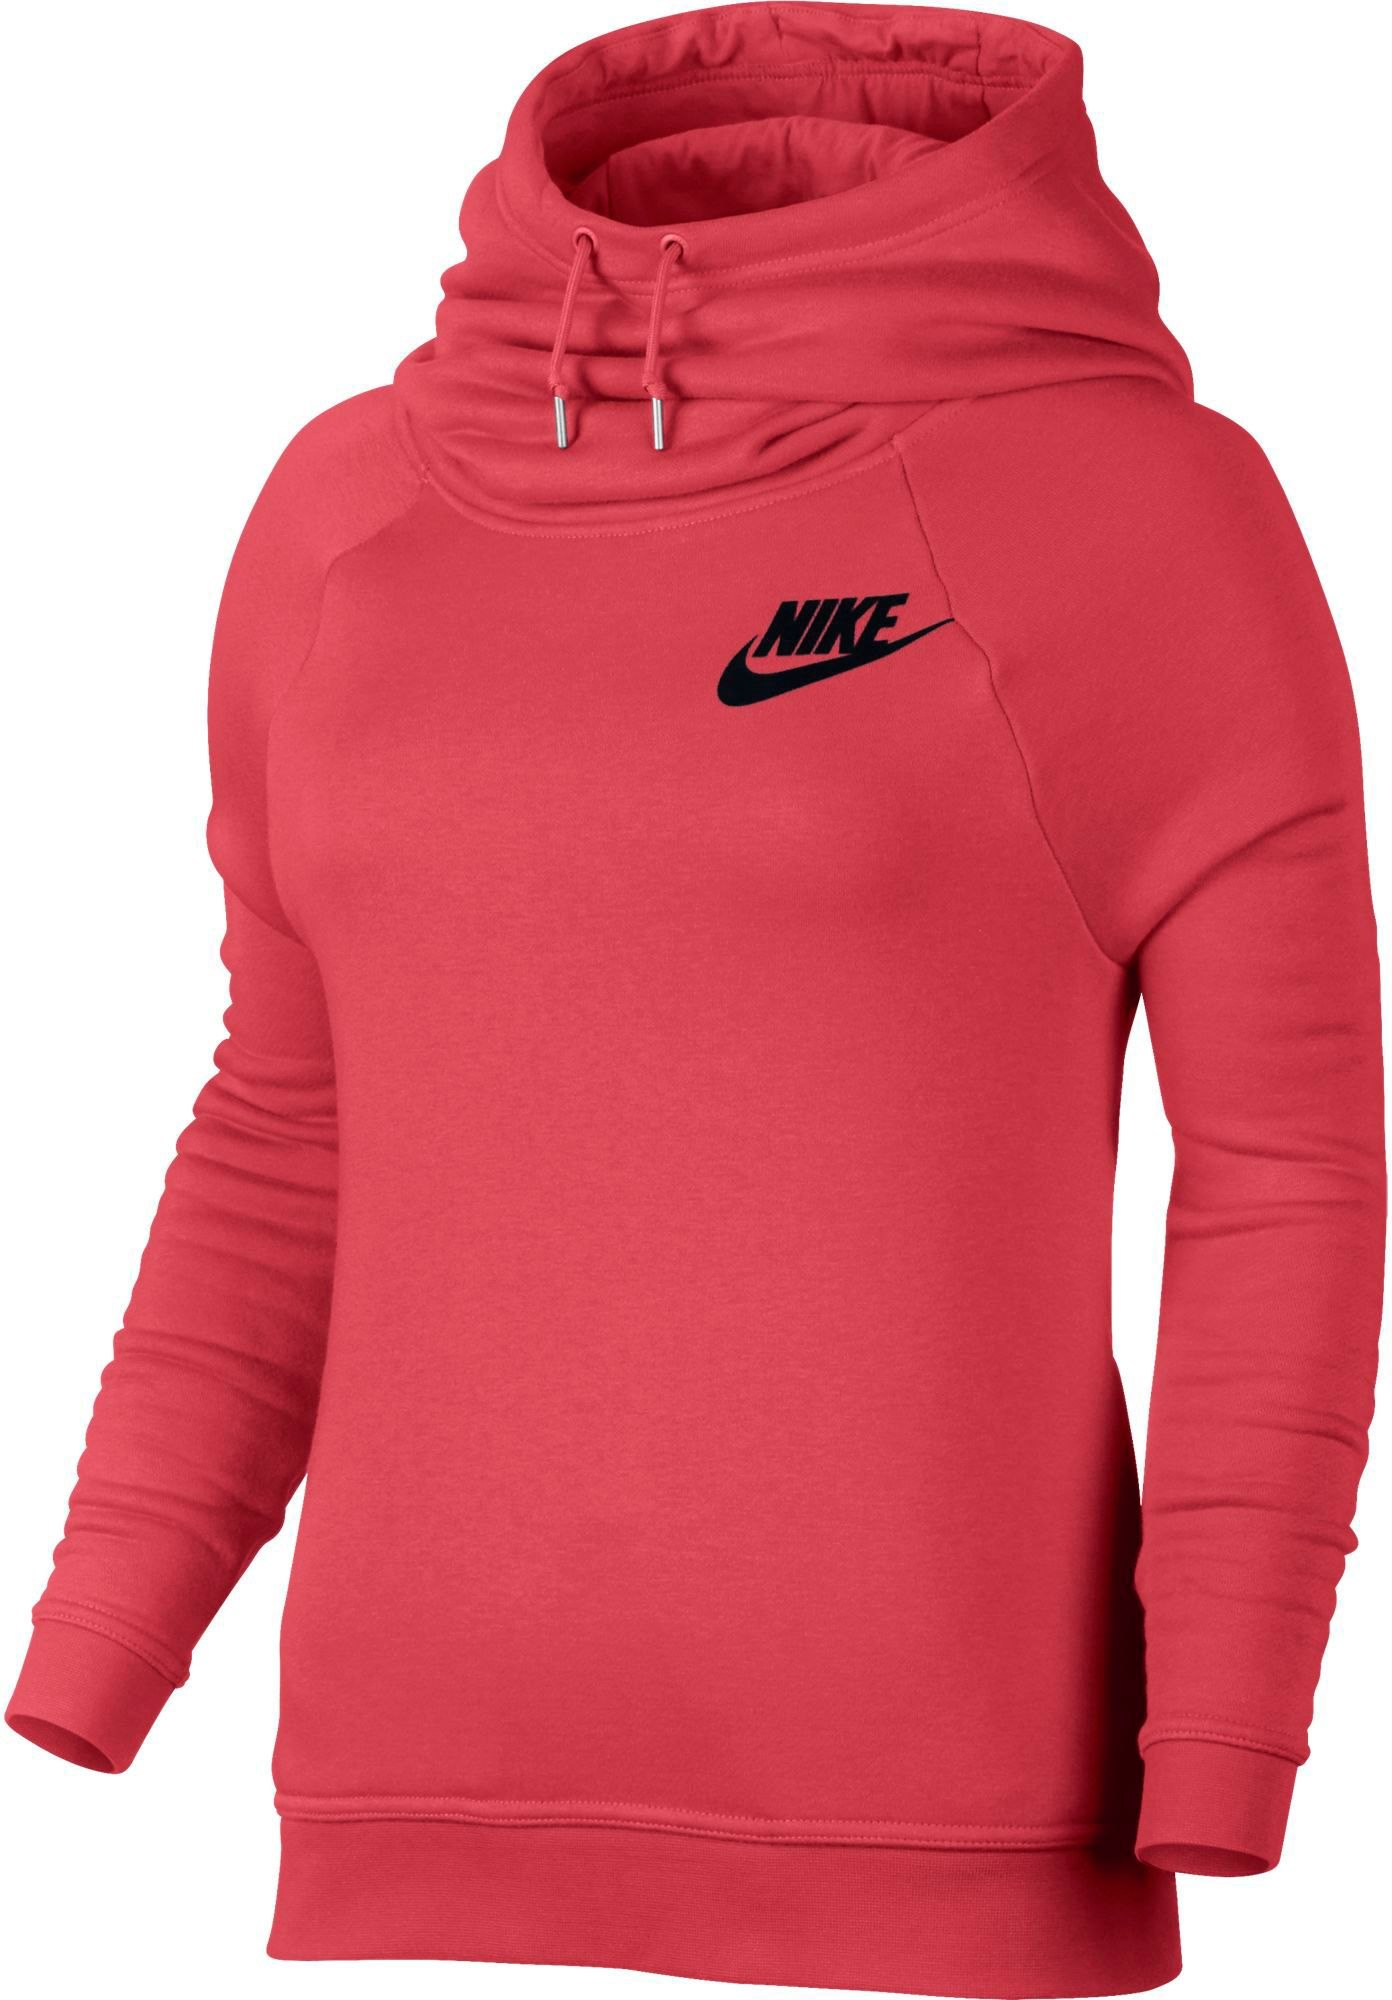 Buy Sweatshirts Online for Women - Browse new arrival in Hoodies for women. Check latest price in India and shop at India's favourite online store &#; Free Shipping &#; COD &#; 30 Days Exchange &#; Best Offers.